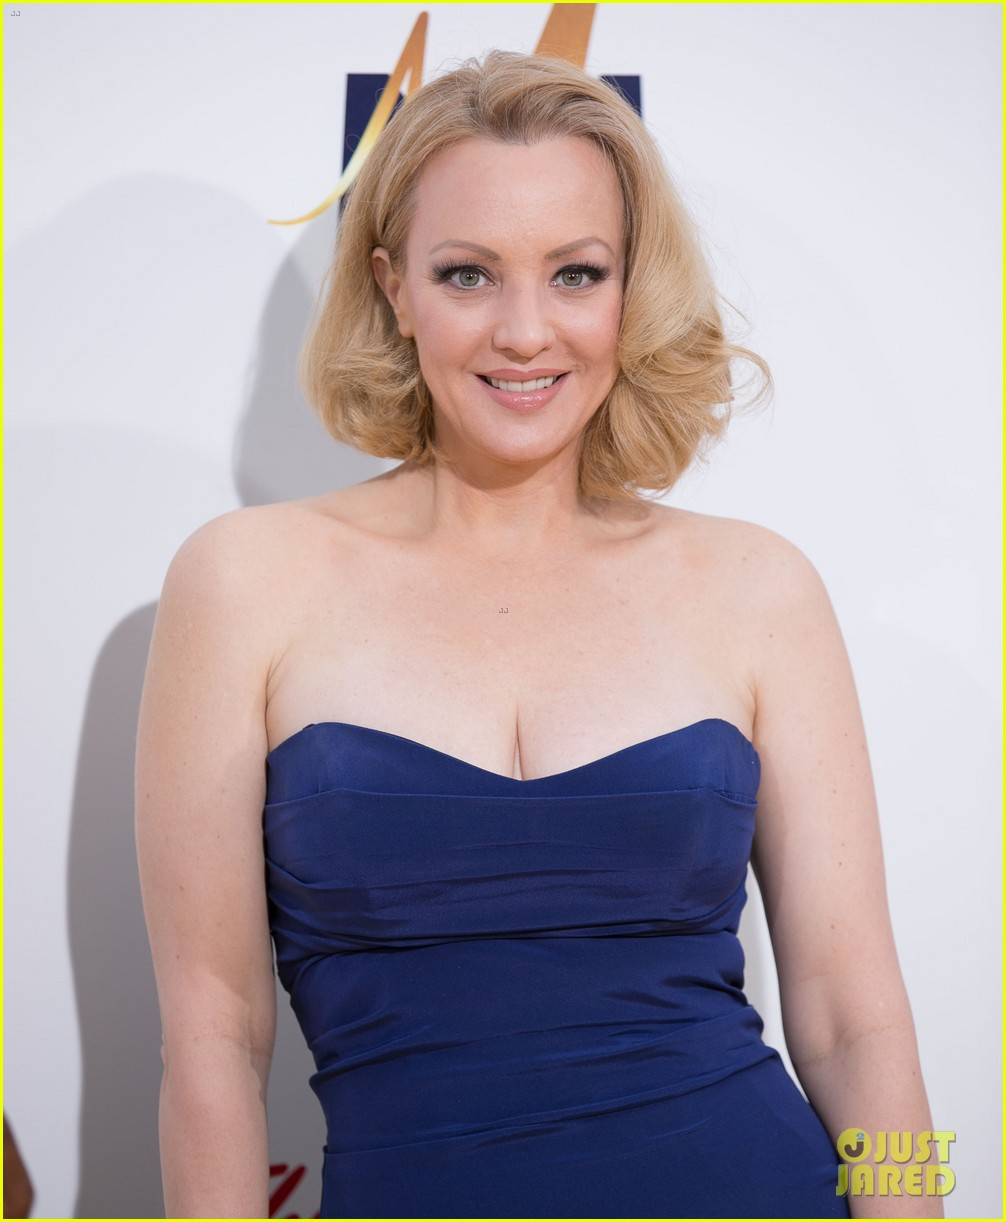 Opinion you sexy pictures of wendi mclendon covey seems impossible